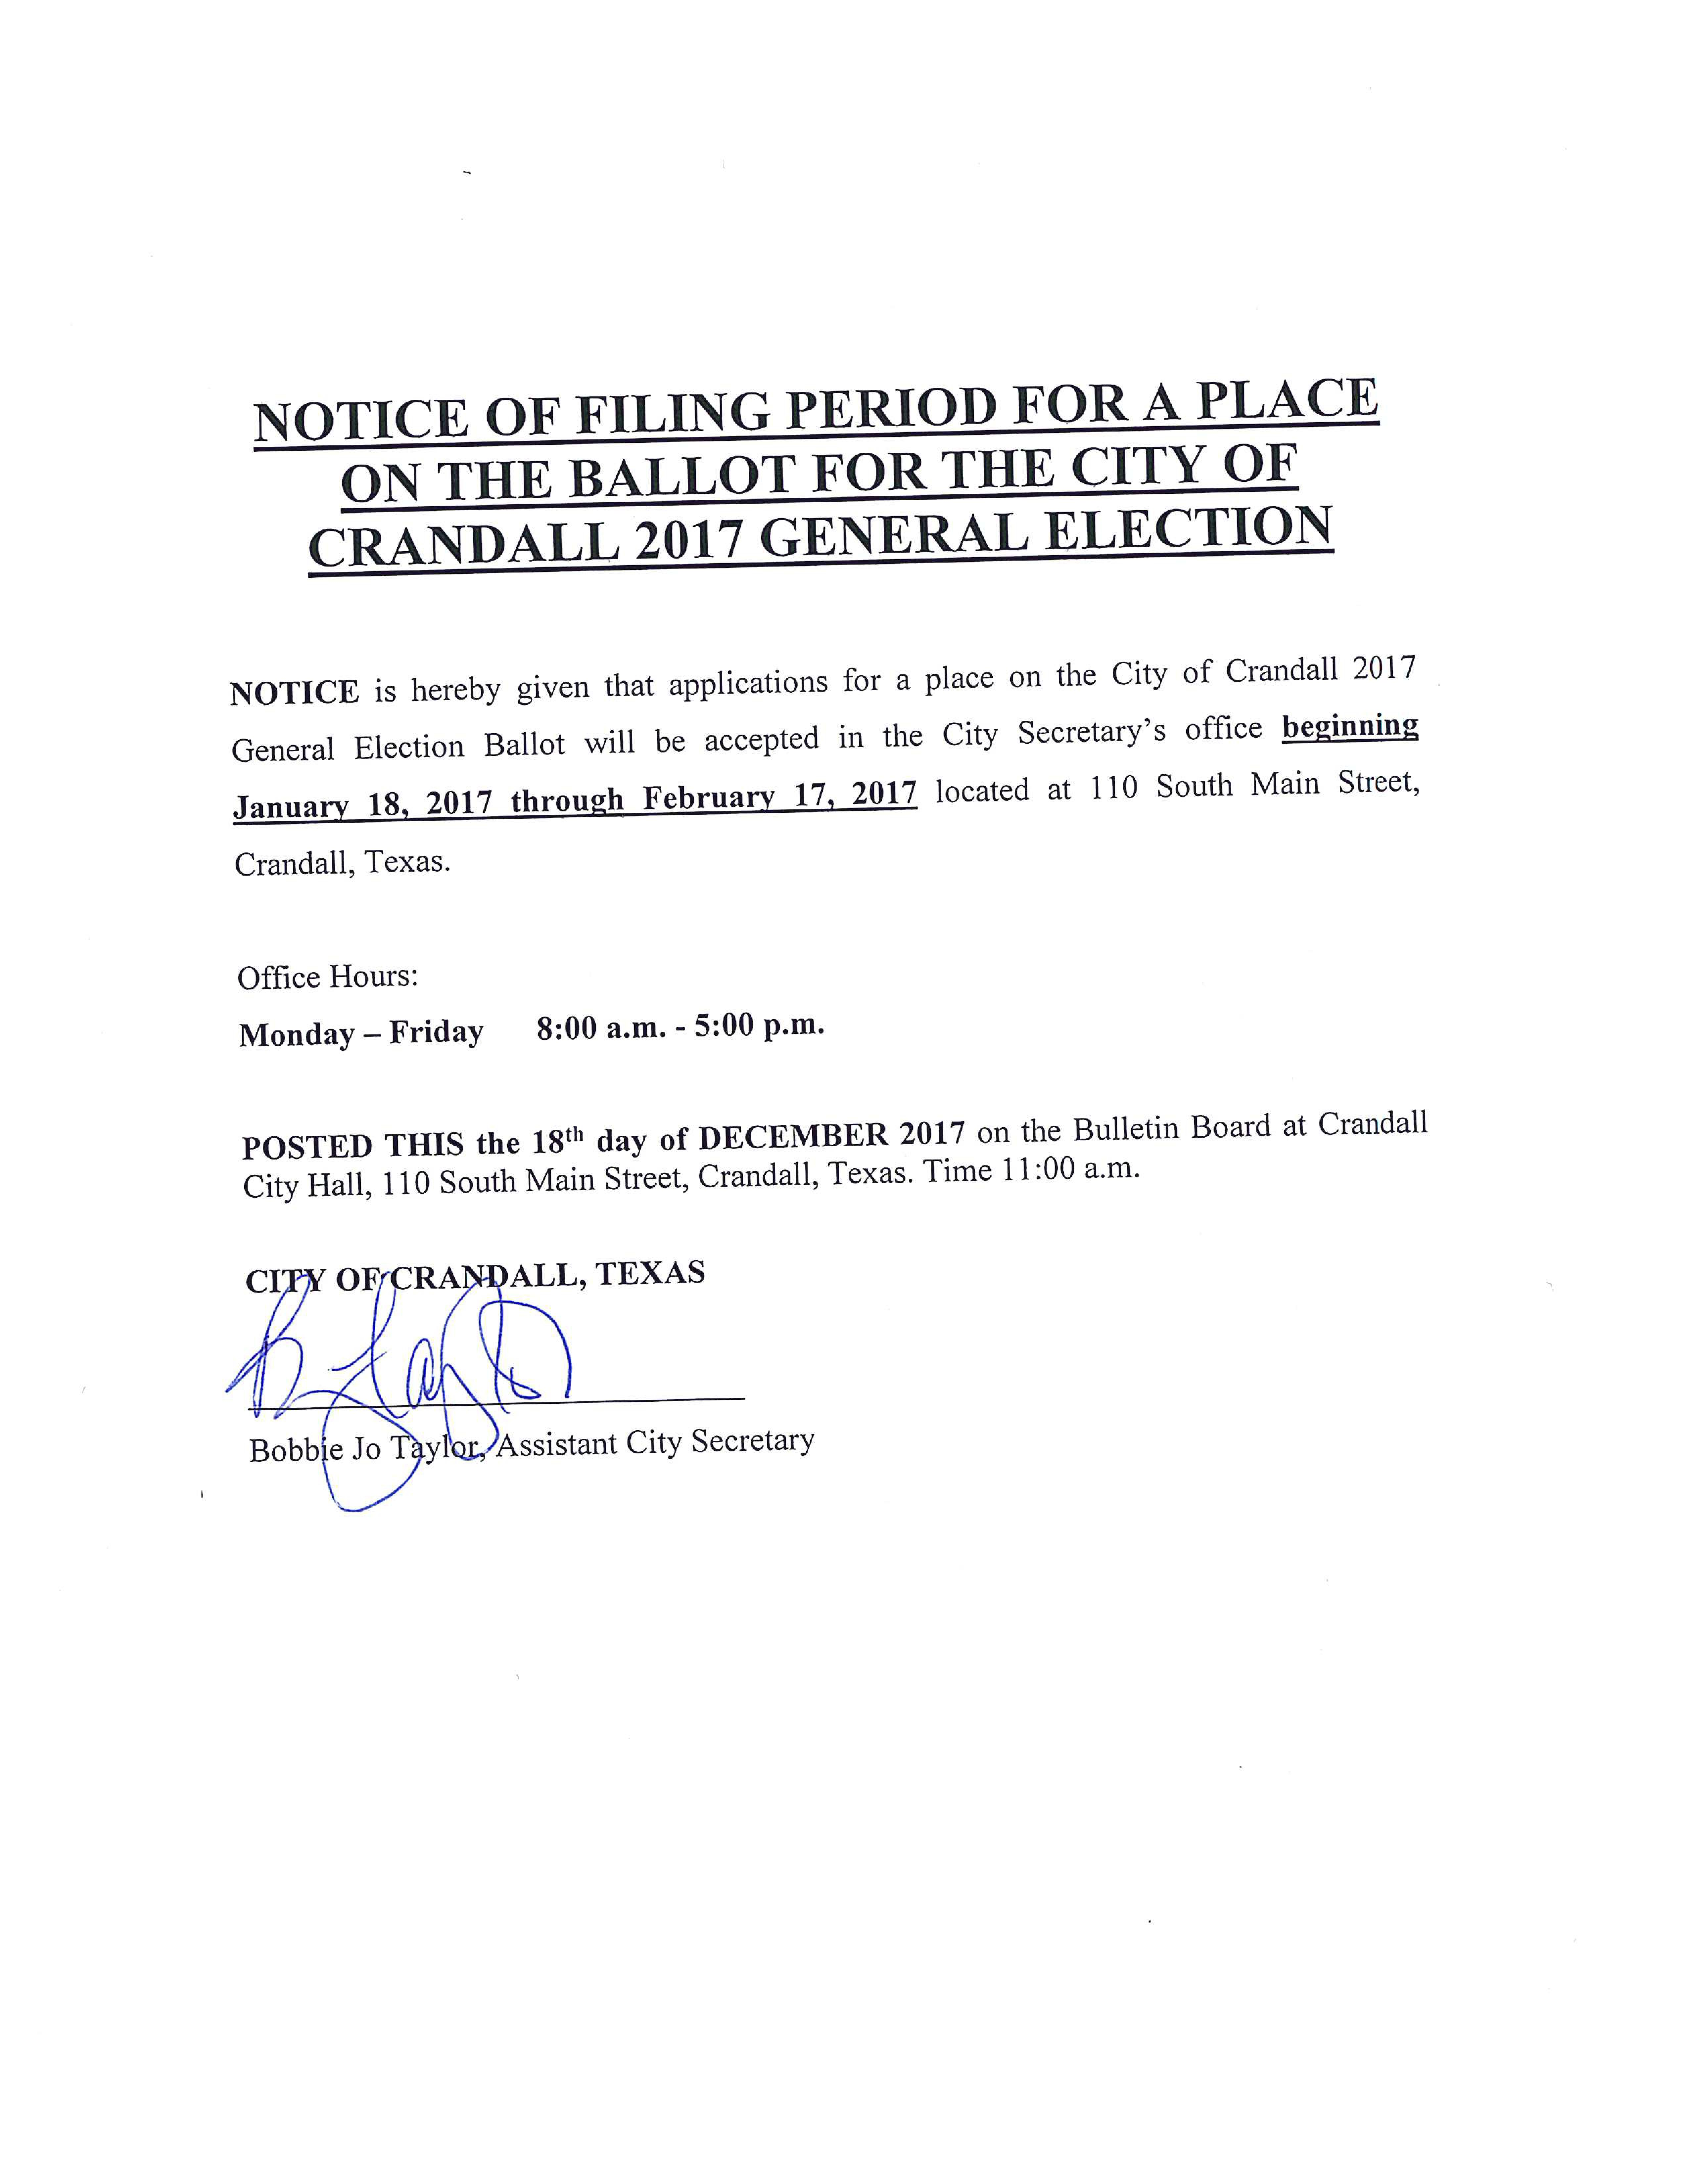 signed notice for place on ballot.jpg